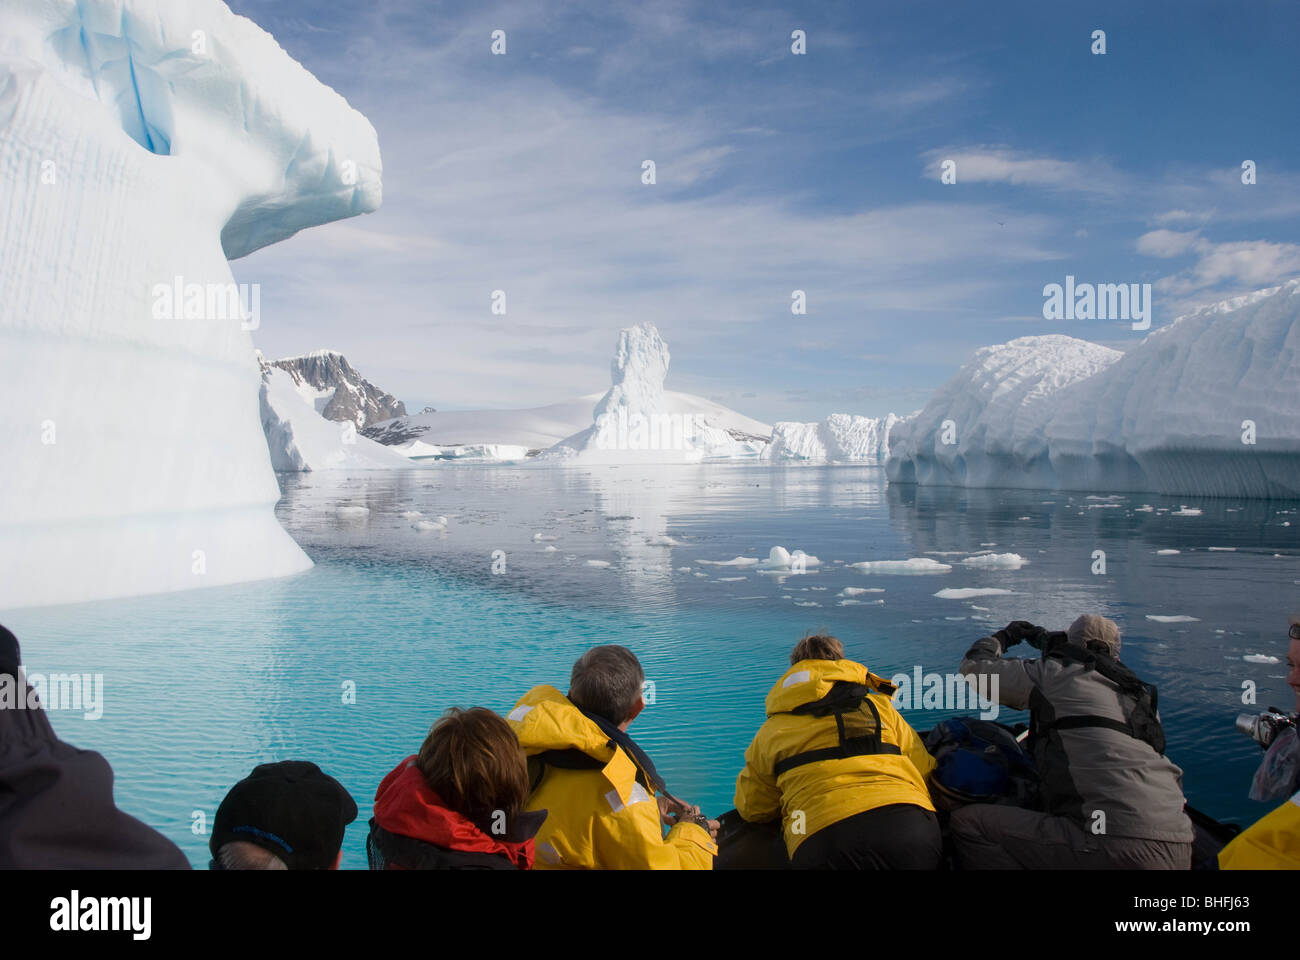 Tourist enjoy a zodiac cruise amongst grounded ice bergs near Pleneau Island, Antarctic Peninsula. - Stock Image